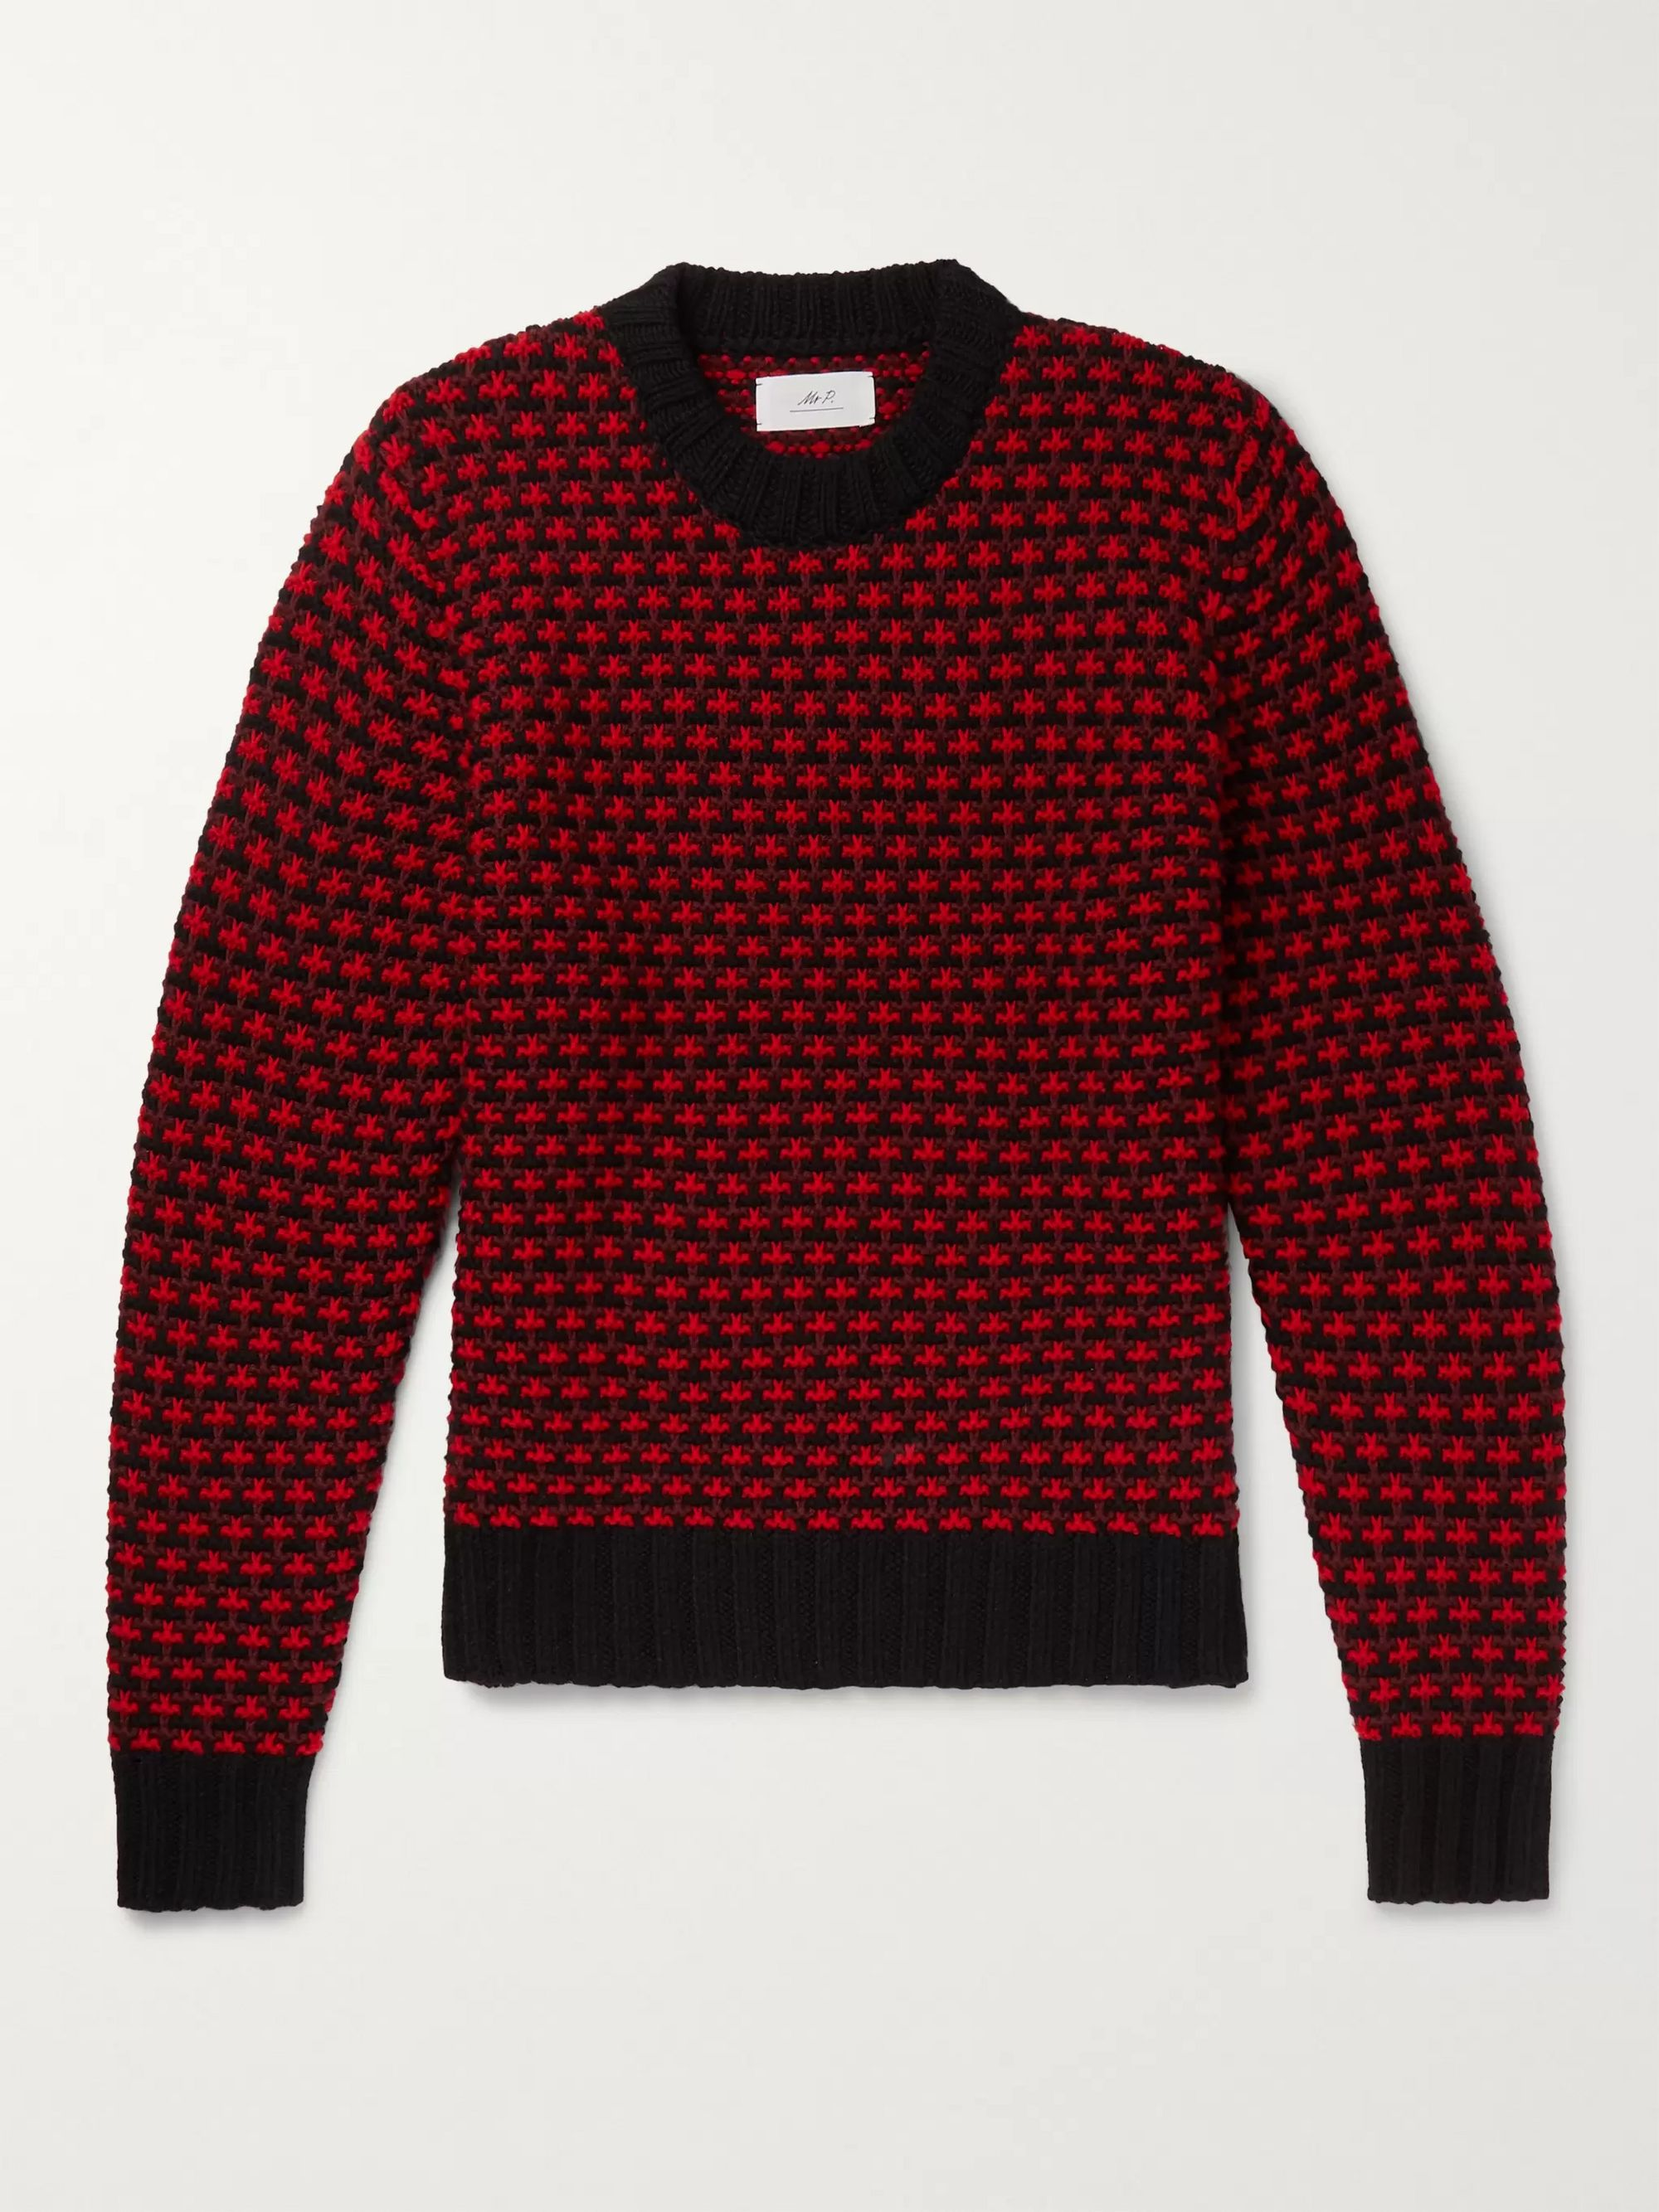 Mr P. Intarsia Merino Wool Sweater